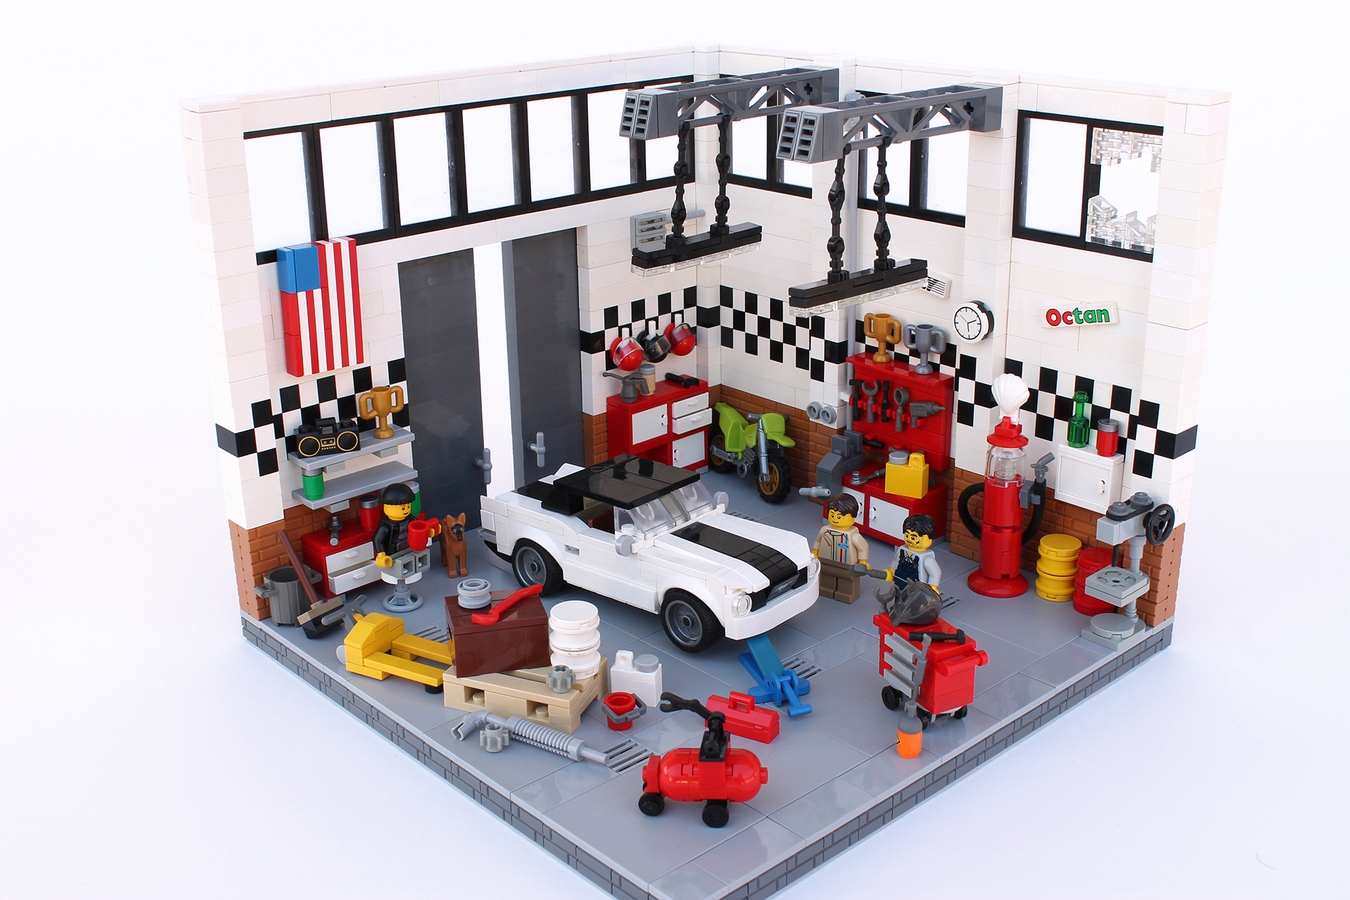 LEGO IDEAS - Celebrate your favorite Ford Mustang in a